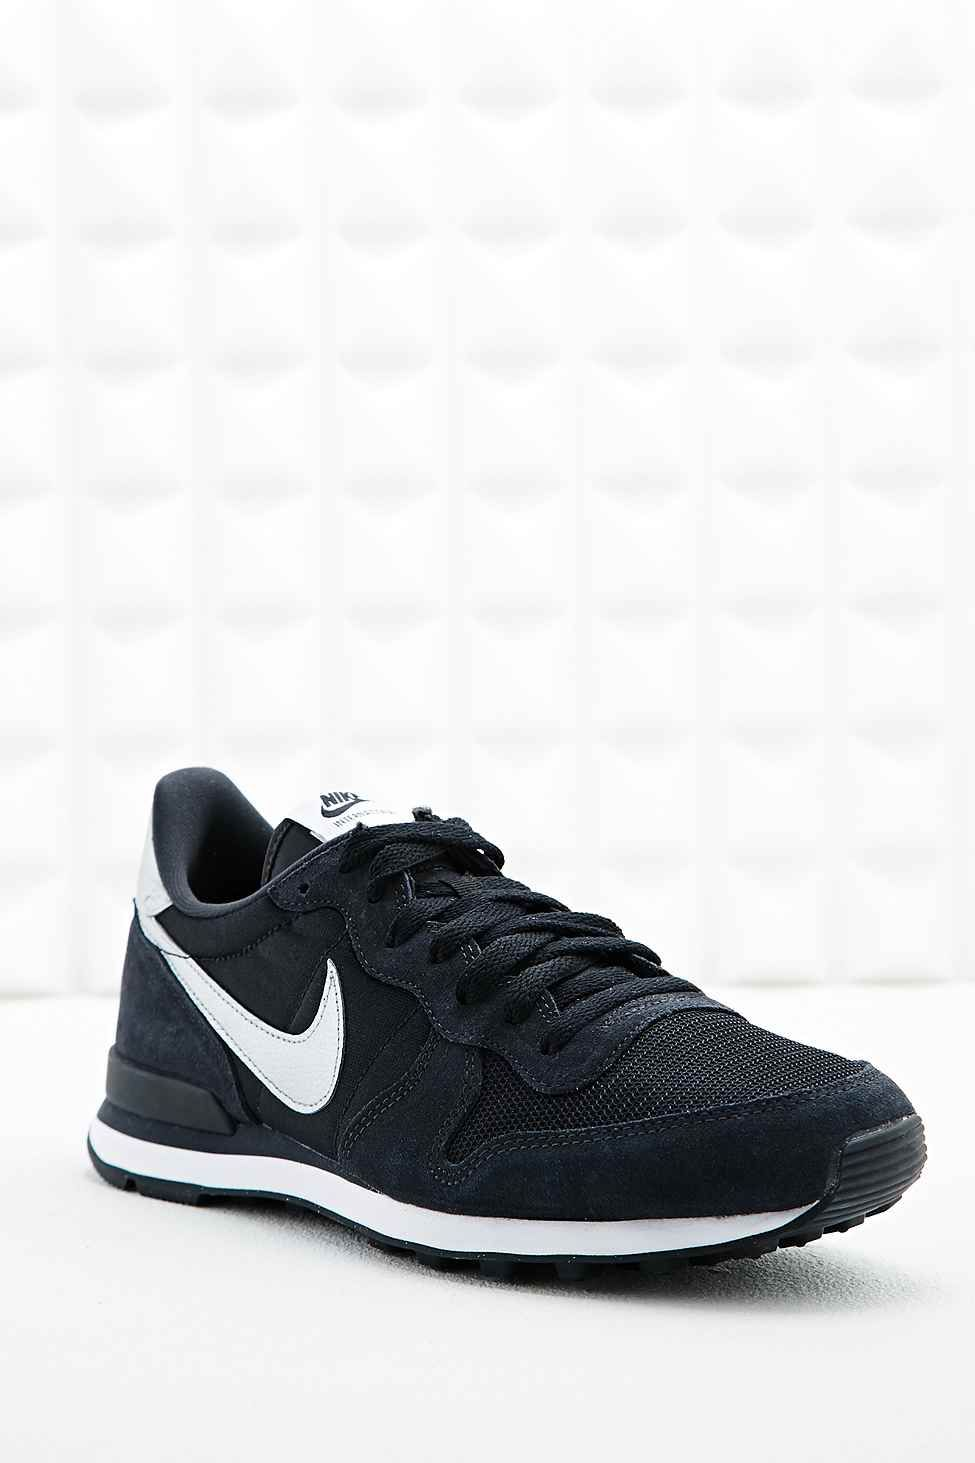 Nike Internationalist Trainers In Black And Grey Nike Nike Internationalist Black And Grey